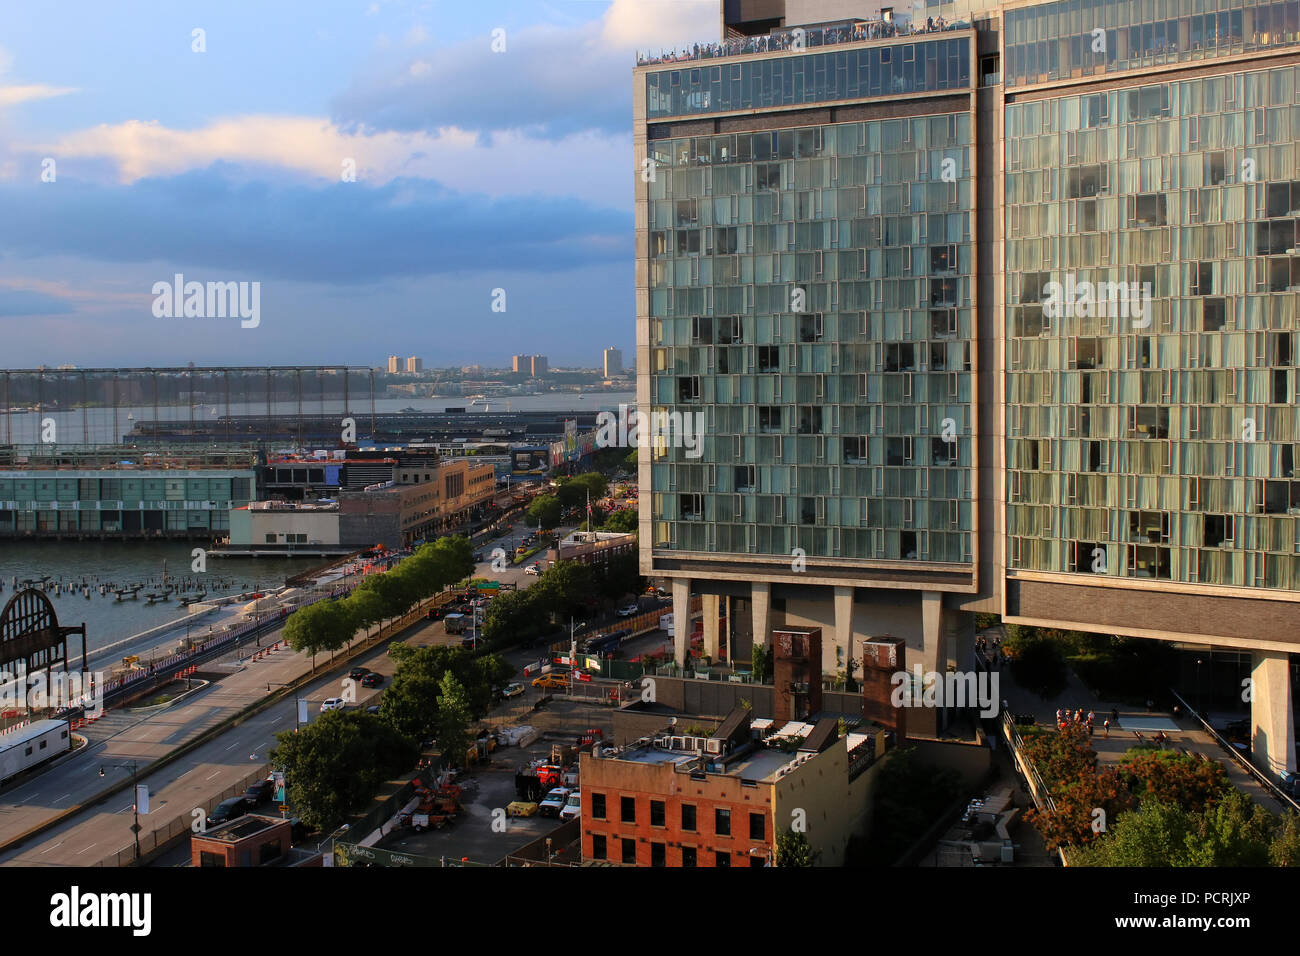 Rooftop view of Standard Hotel and Hudson River Greenway, Meatpacking District, Manhattan on JULY 7th, 2017 in New York, USA. (Photo by Wojciech Migda Stock Photo